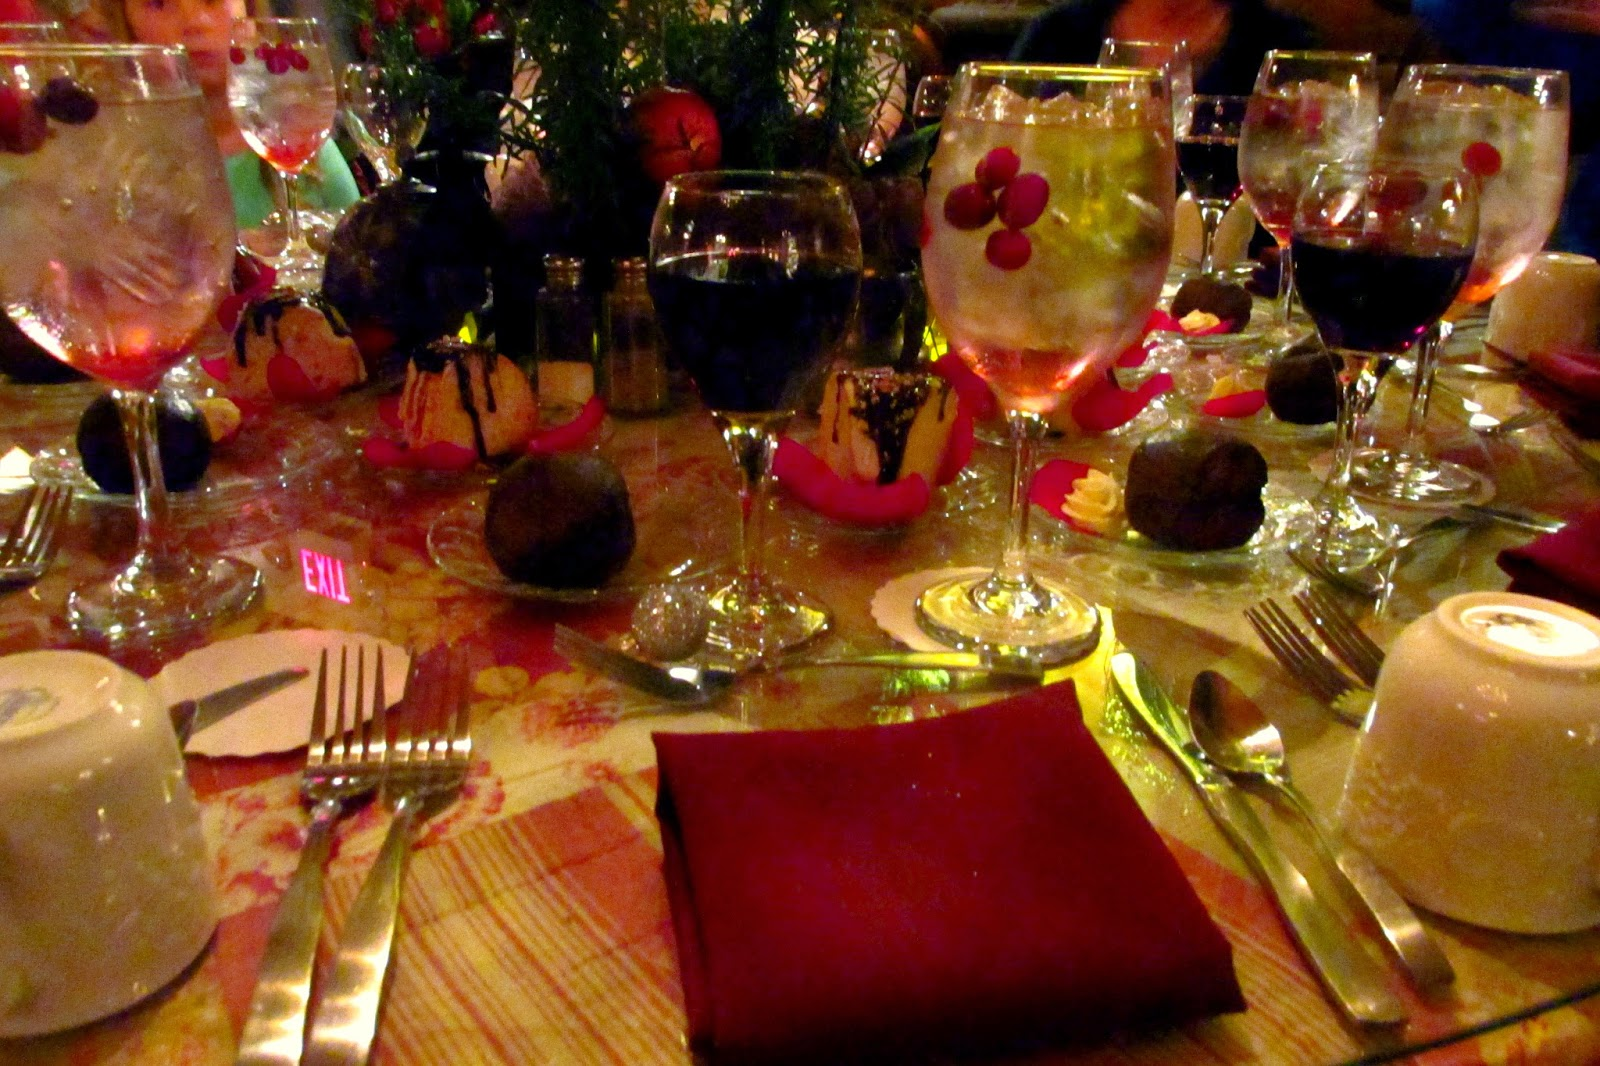 remarkable michigan exposures office thanksgiving decorations | The Marmelade Gypsy -The Real One: Holiday Decorating on a ...